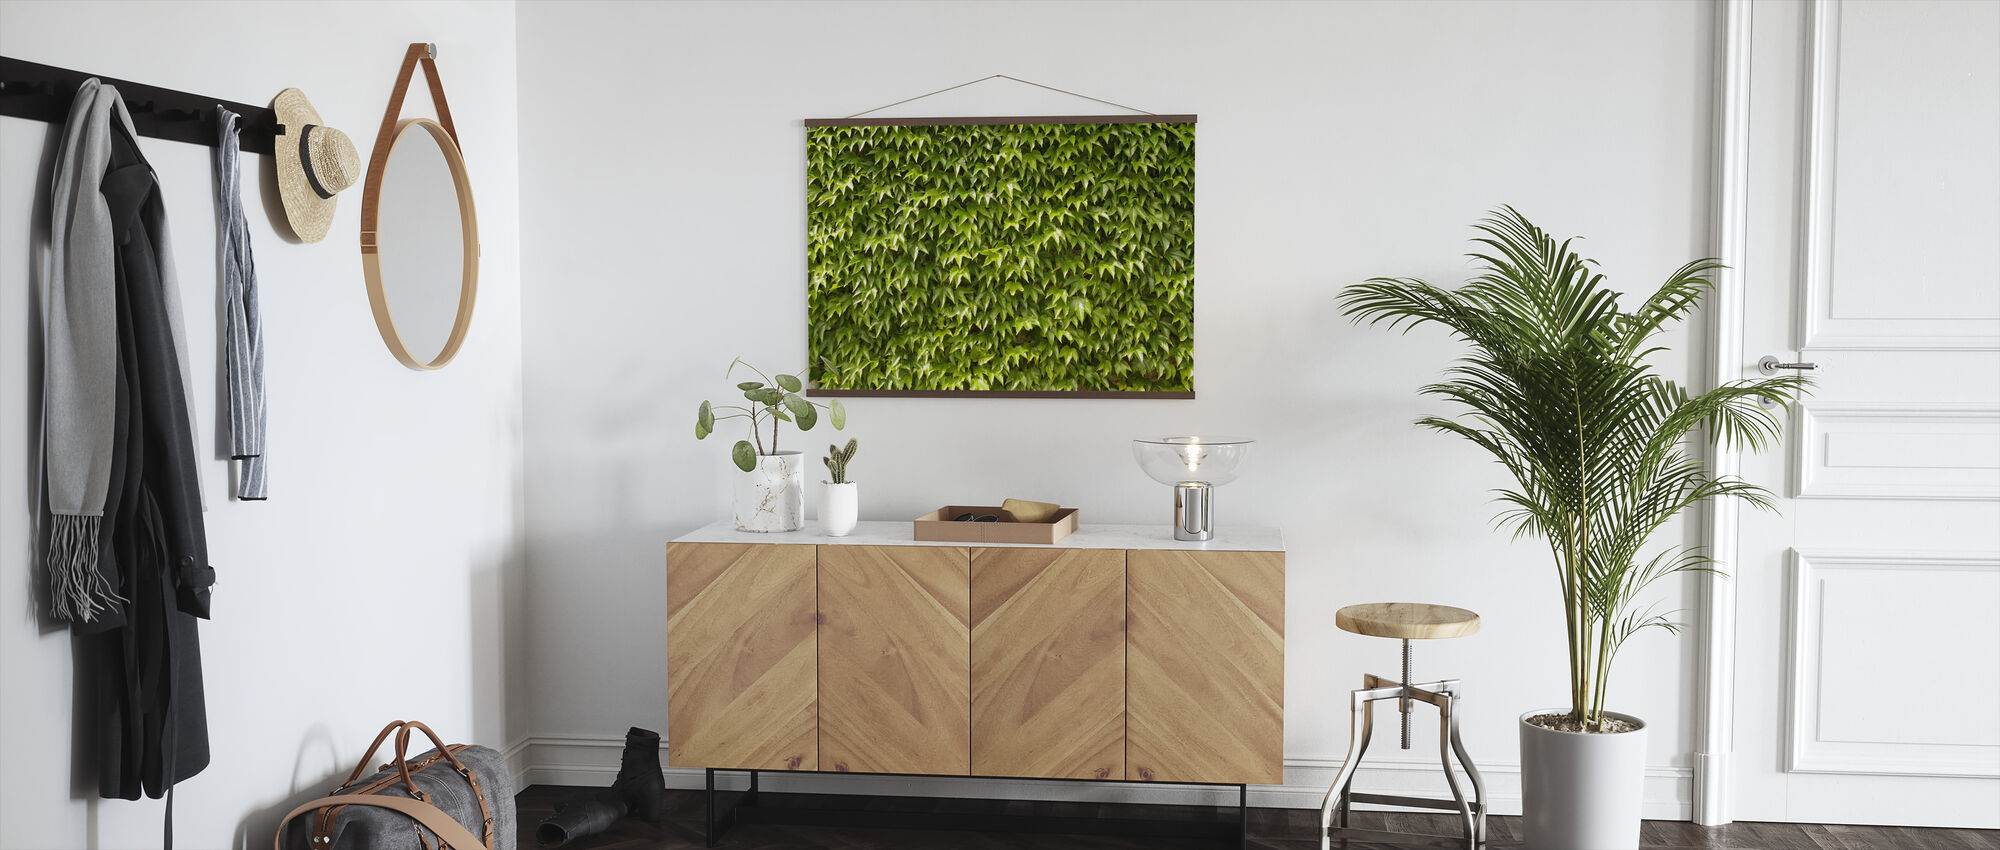 Green Wall of Ivy Leaves - Poster - Hallway